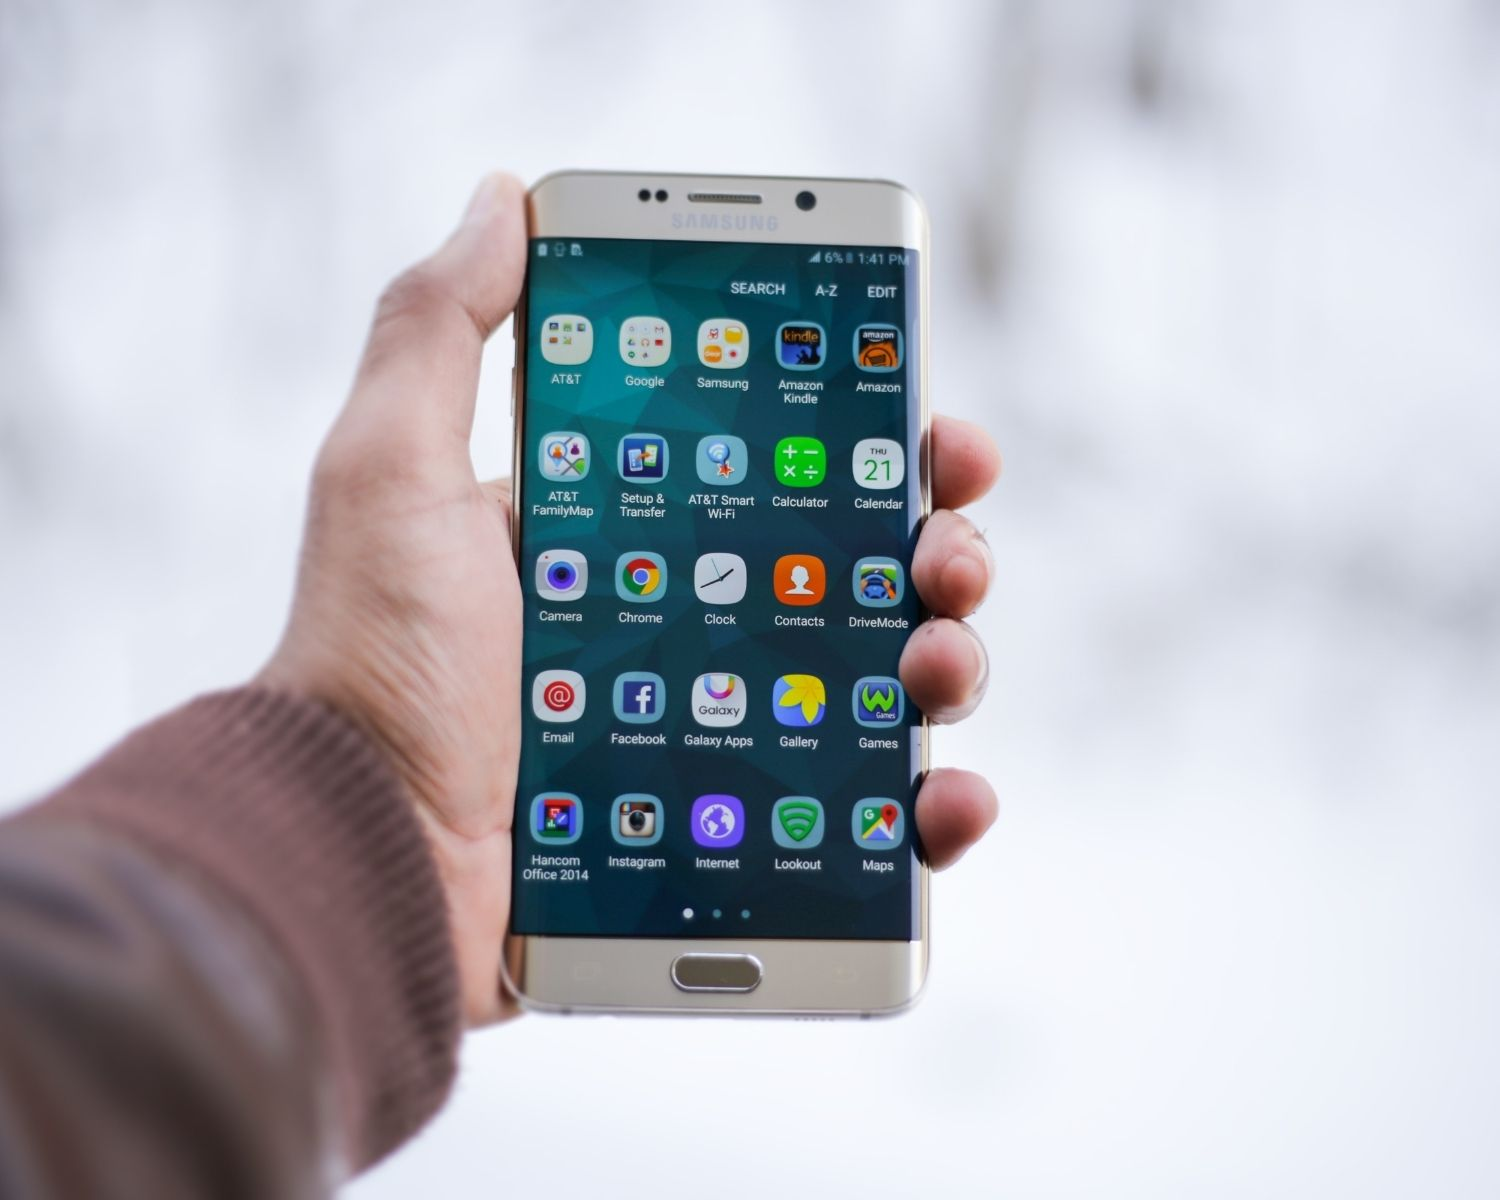 Points to Keep in Mind While Designing Your Mobile Applications